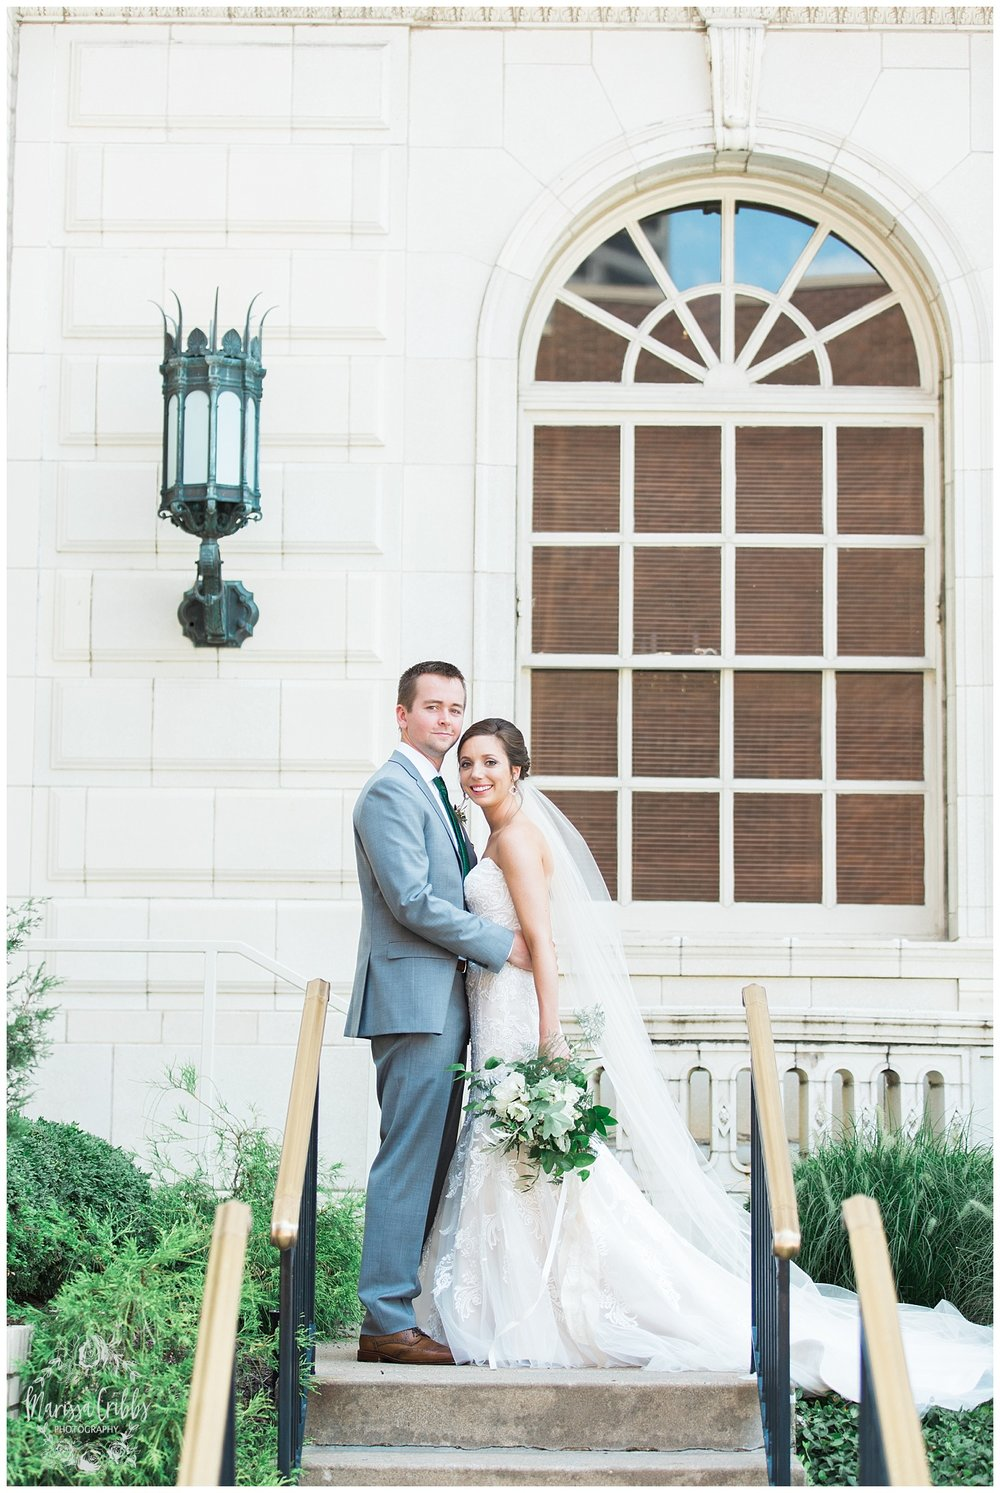 FEASTS OF FANCY KC WEDDING | THE HOBBS WEDDING KANSAS CITY | MARISSA CRIBBS PHOTOGRAPHY_2191.jpg